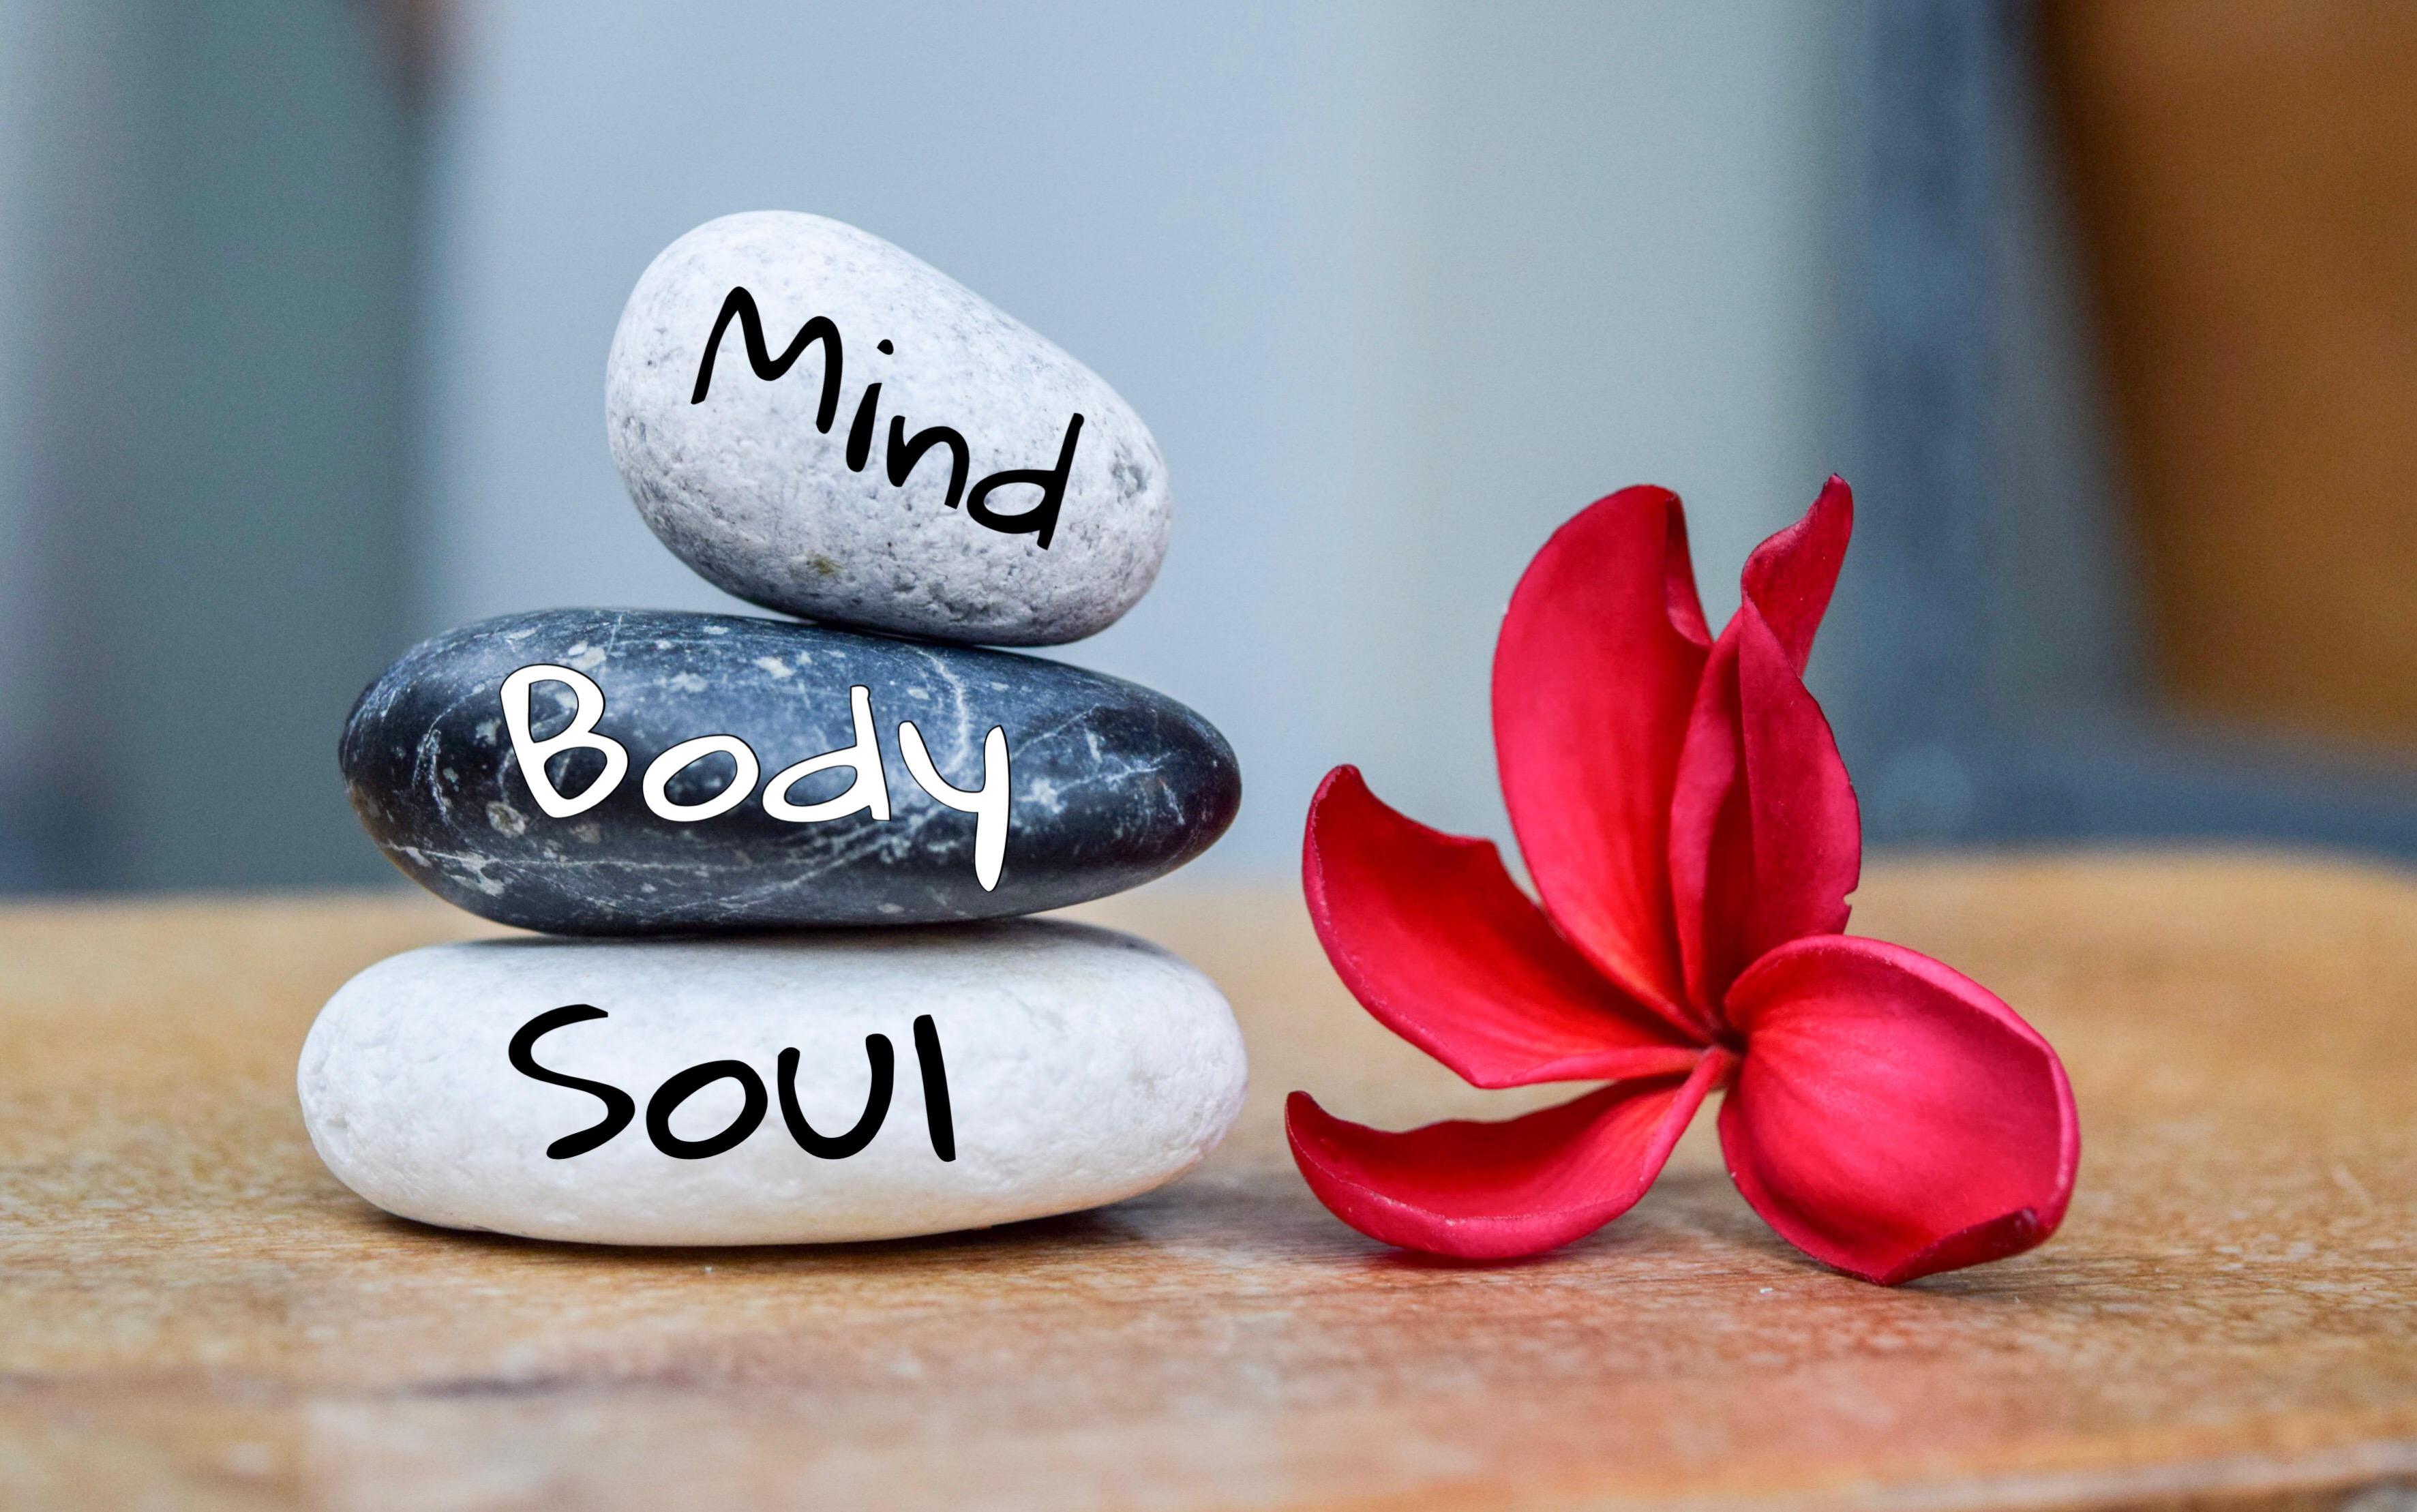 treating-the-mind-body-and-soul